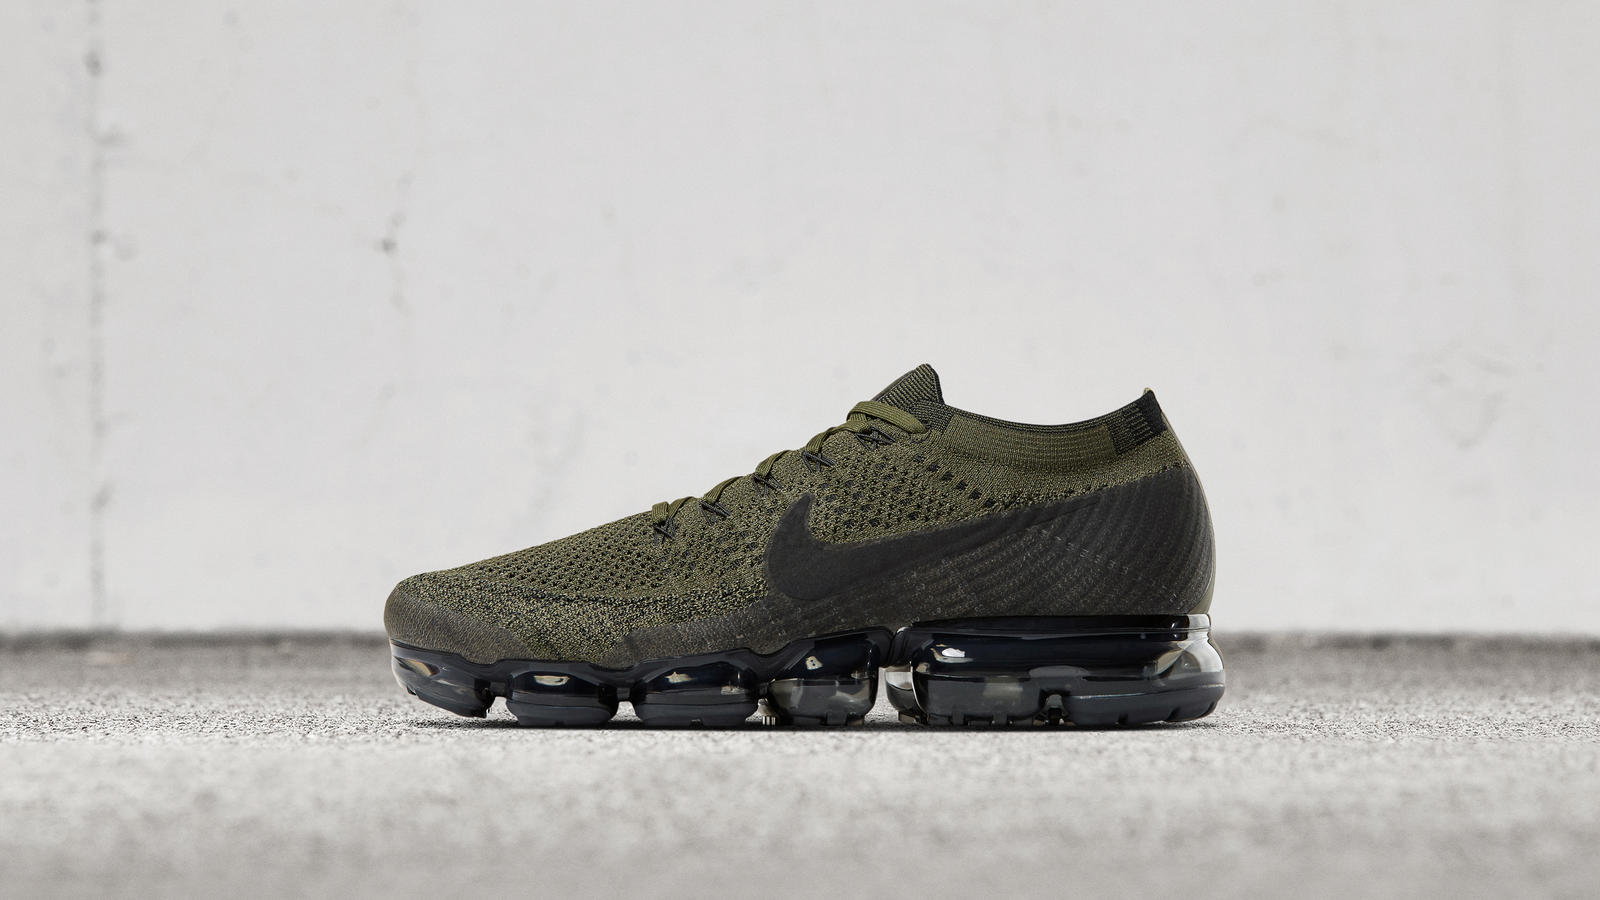 New Nike Air VaporMax Flyknit Colorways